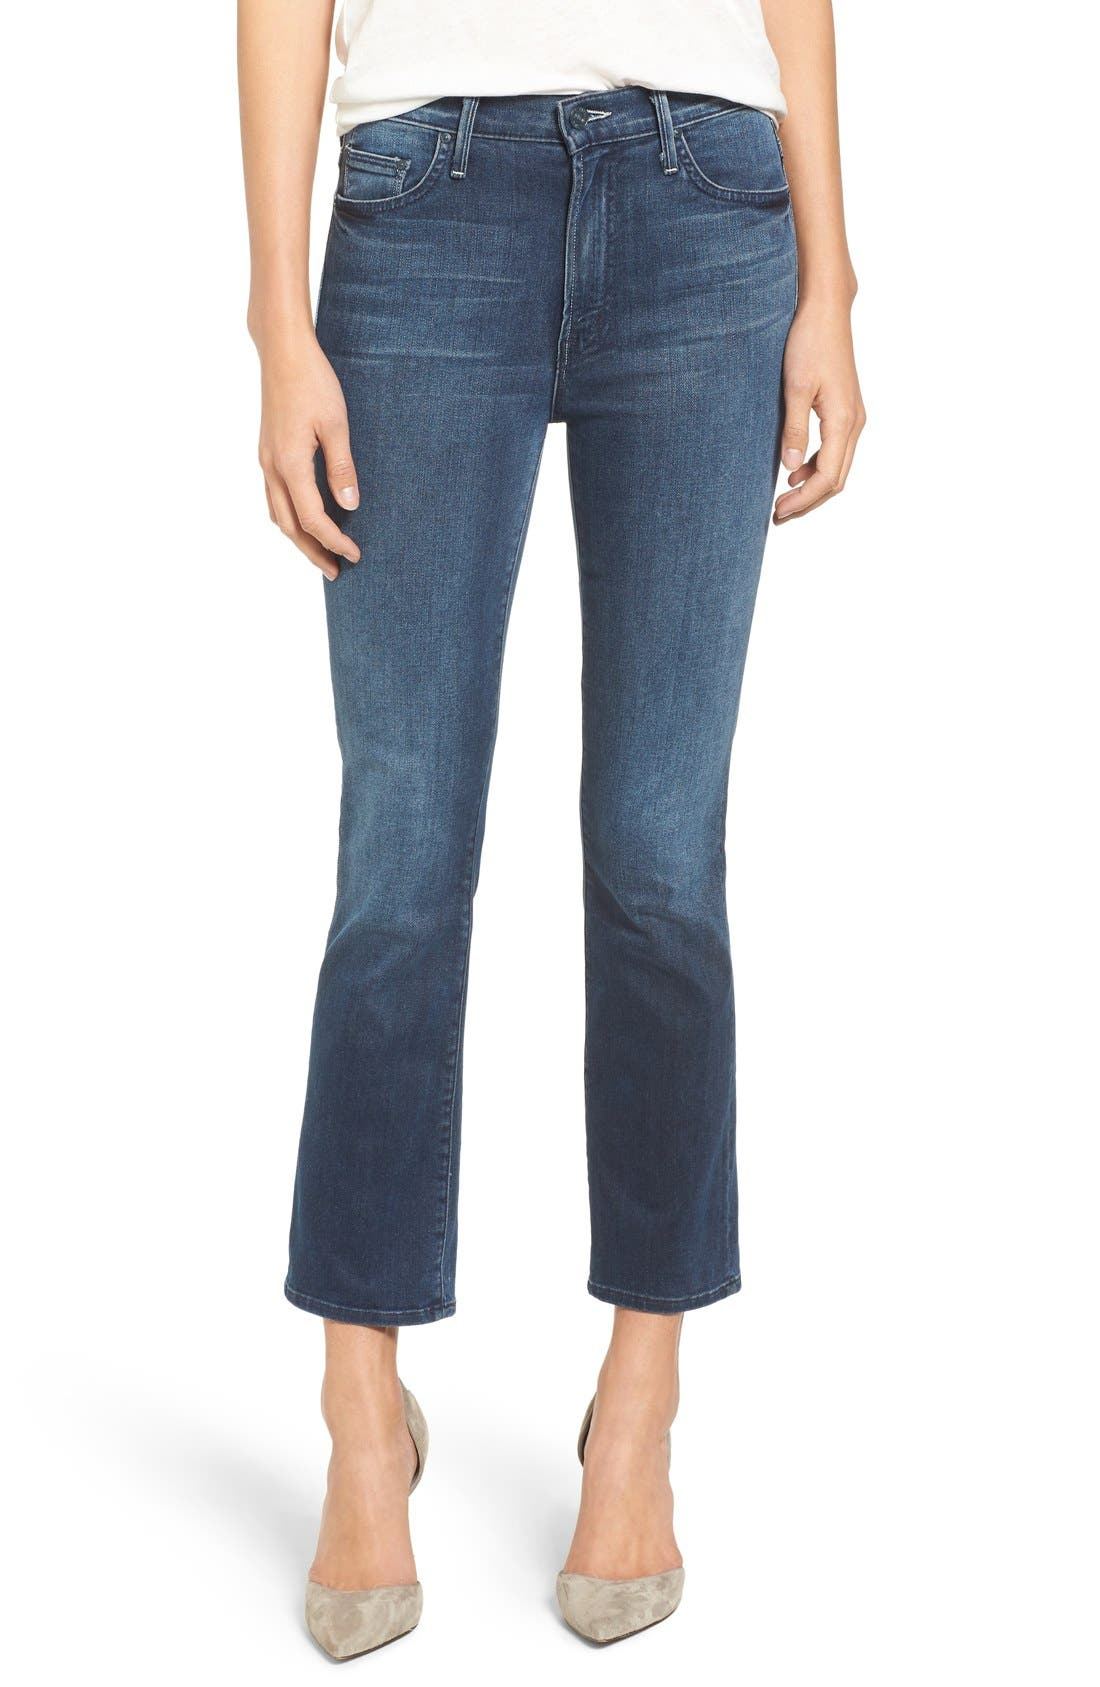 Alternate Image 1 Selected - MOTHER The Insider High Rise Crop Bootcut Jeans (Repeating Love)